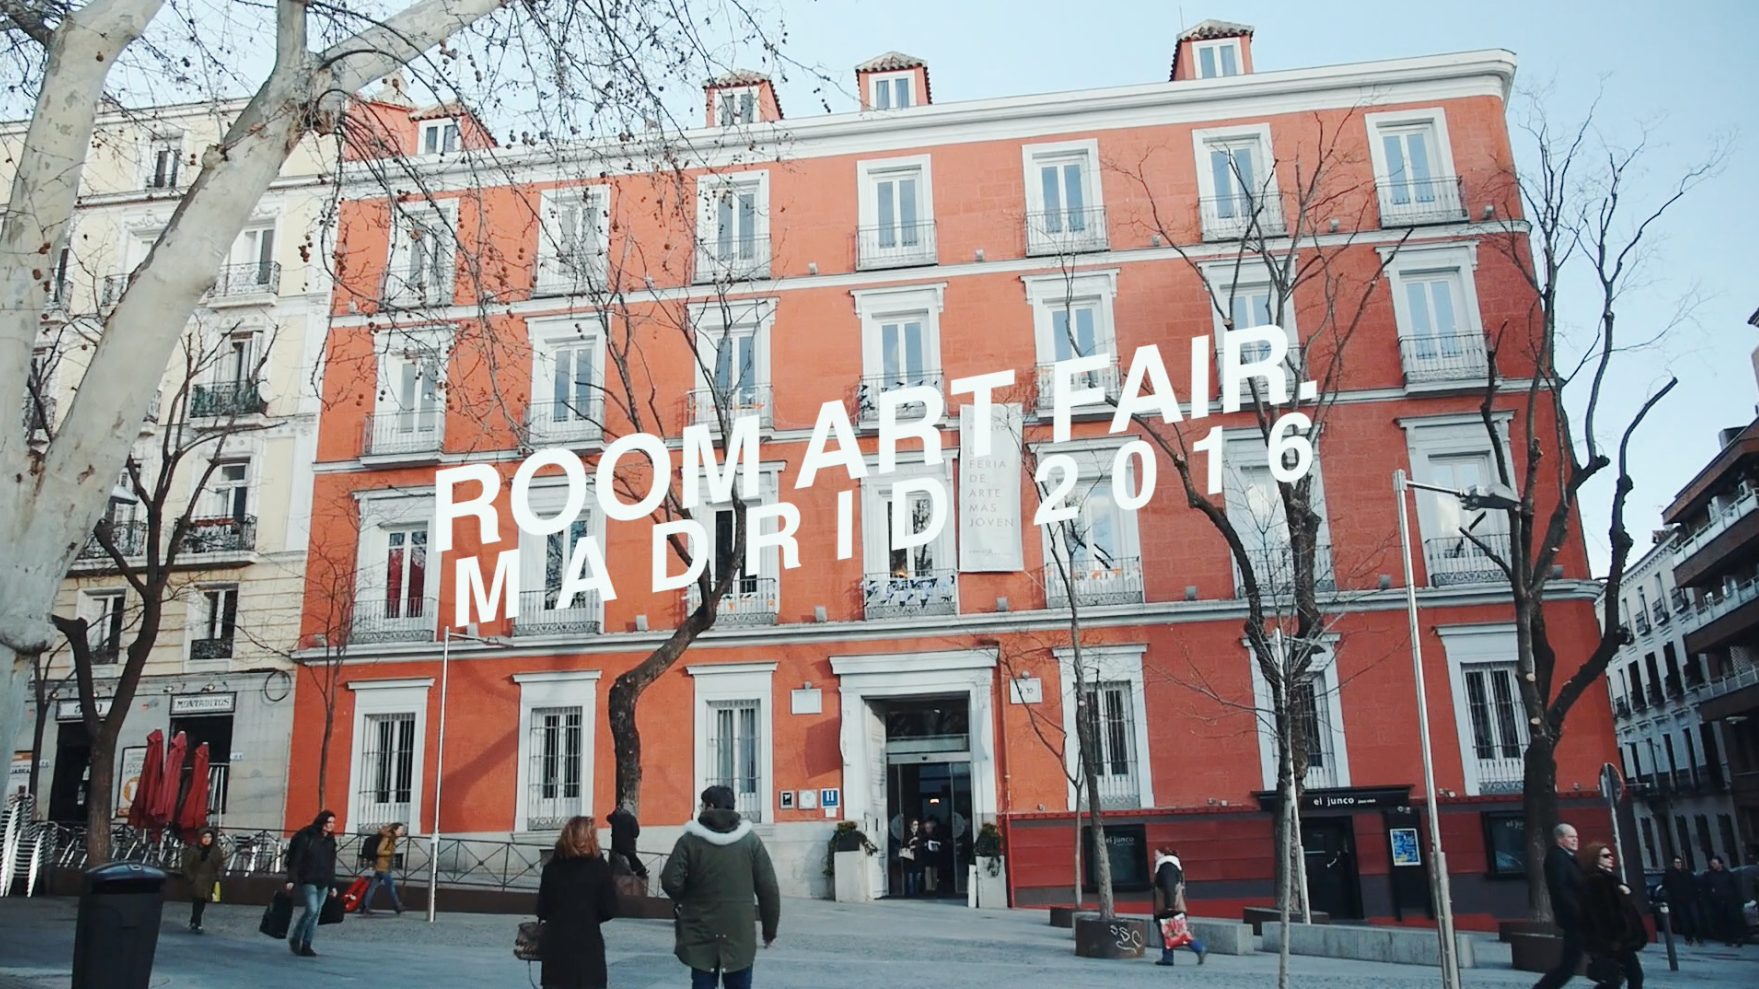 FOUSION GALLERY @ ROOM ART FAIR MADRID 2016